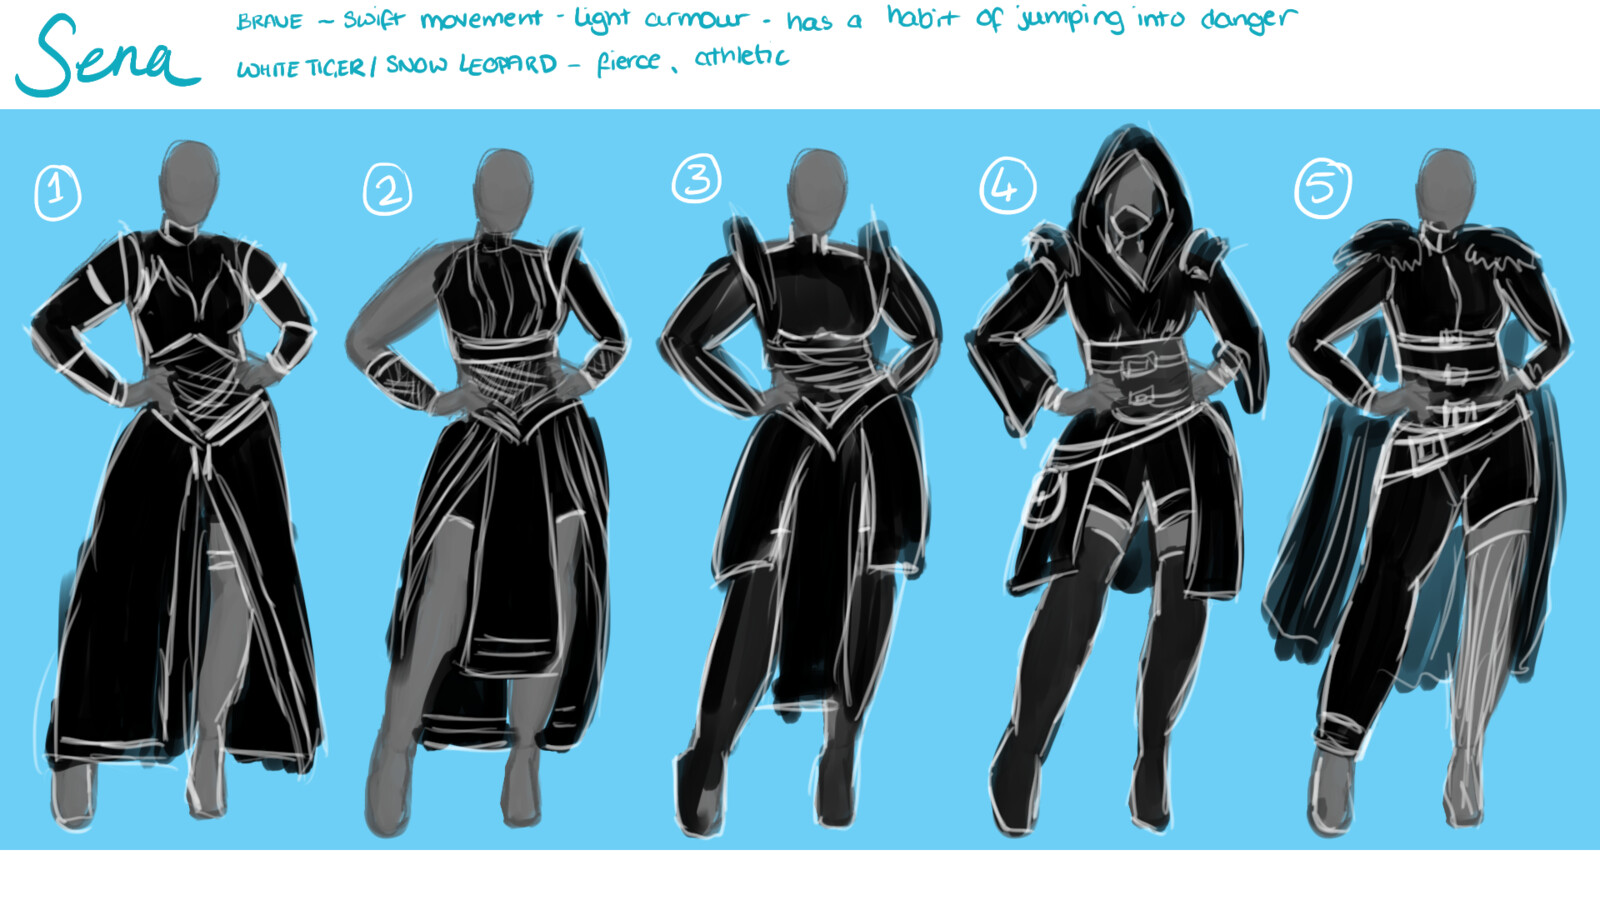 some silhouettes for Sena's outfit